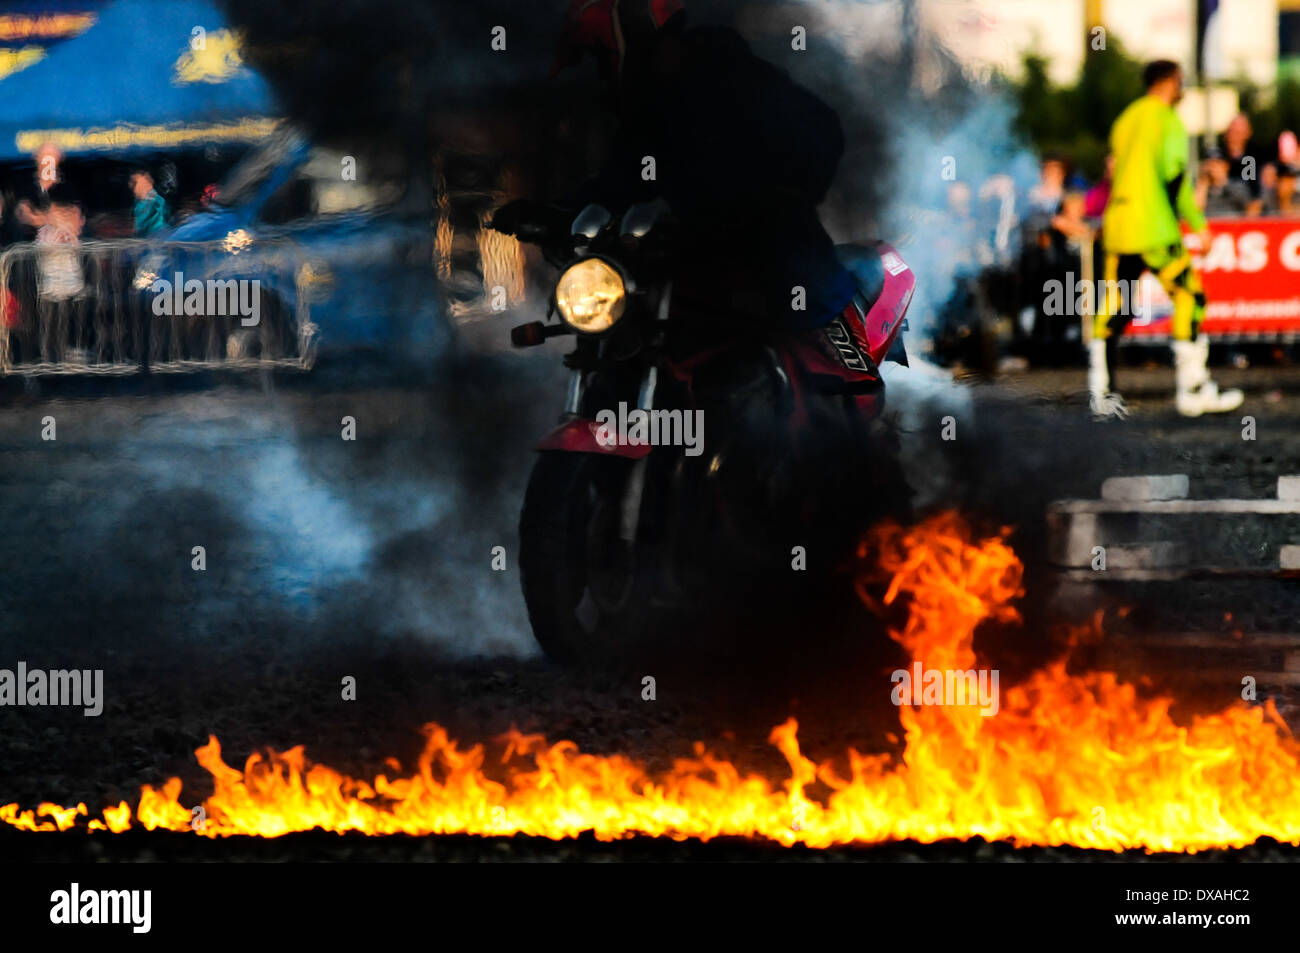 A dare devil performing a burnout on a motorbike while on fire. - Stock Image